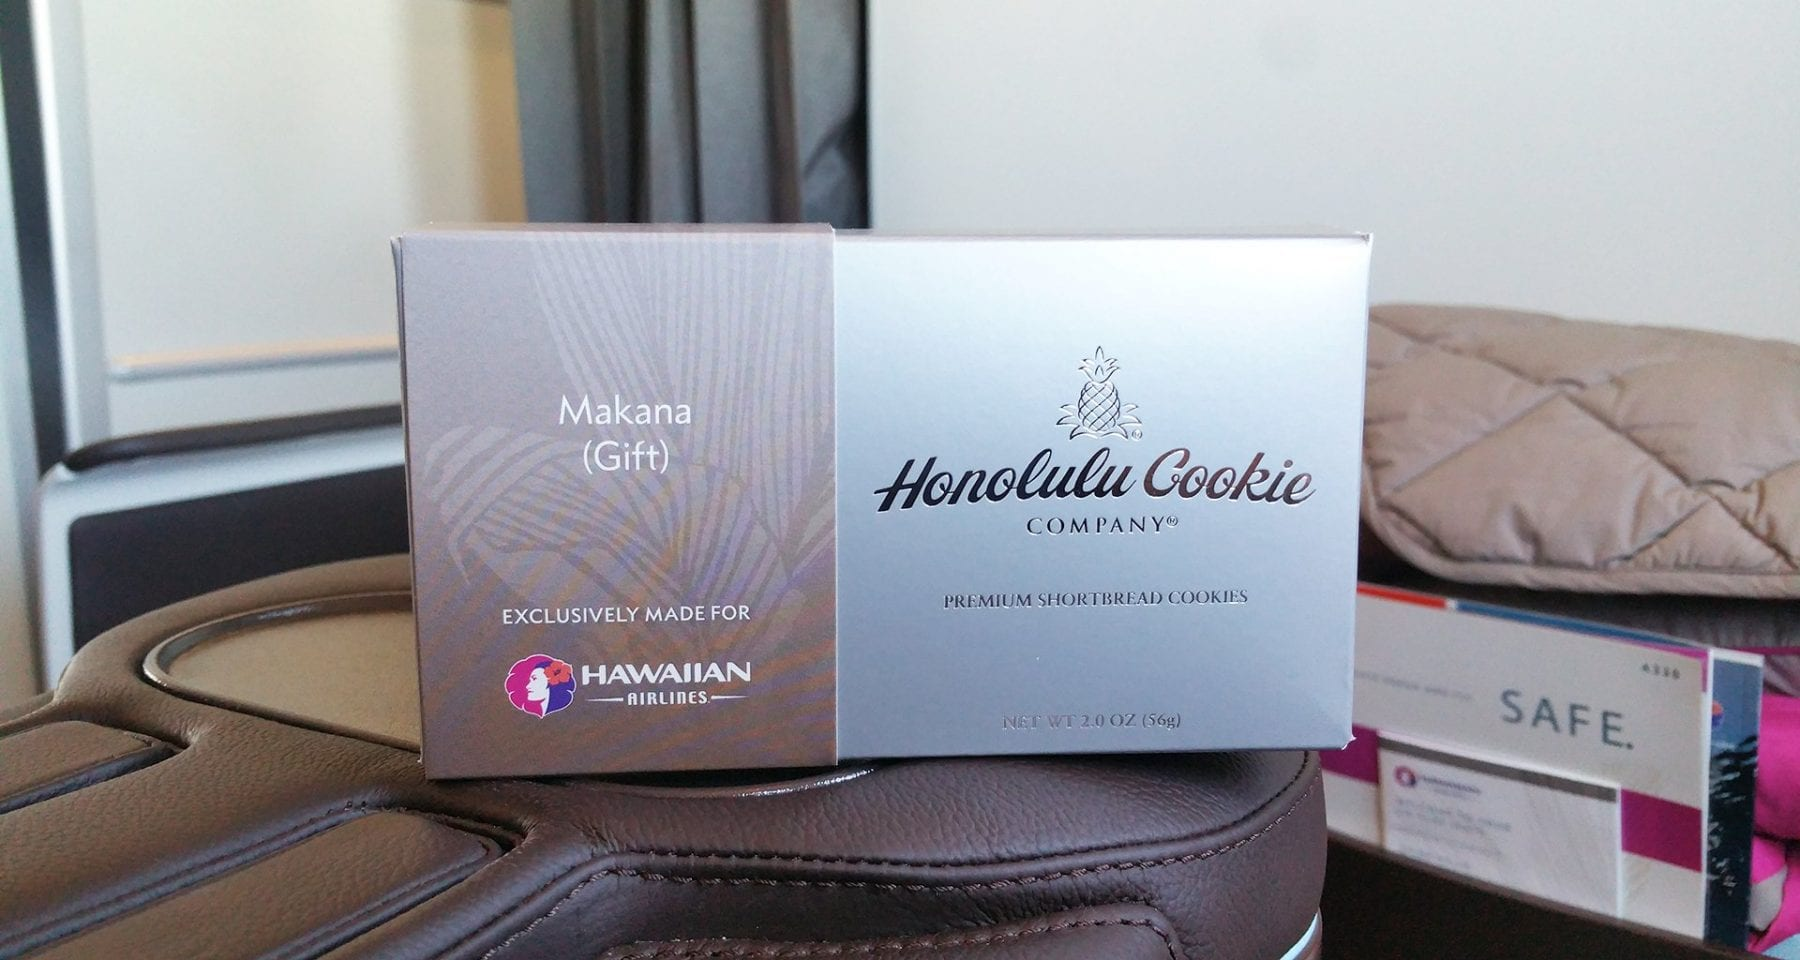 Hawaiian Airlines Honolulu Cookie company gift